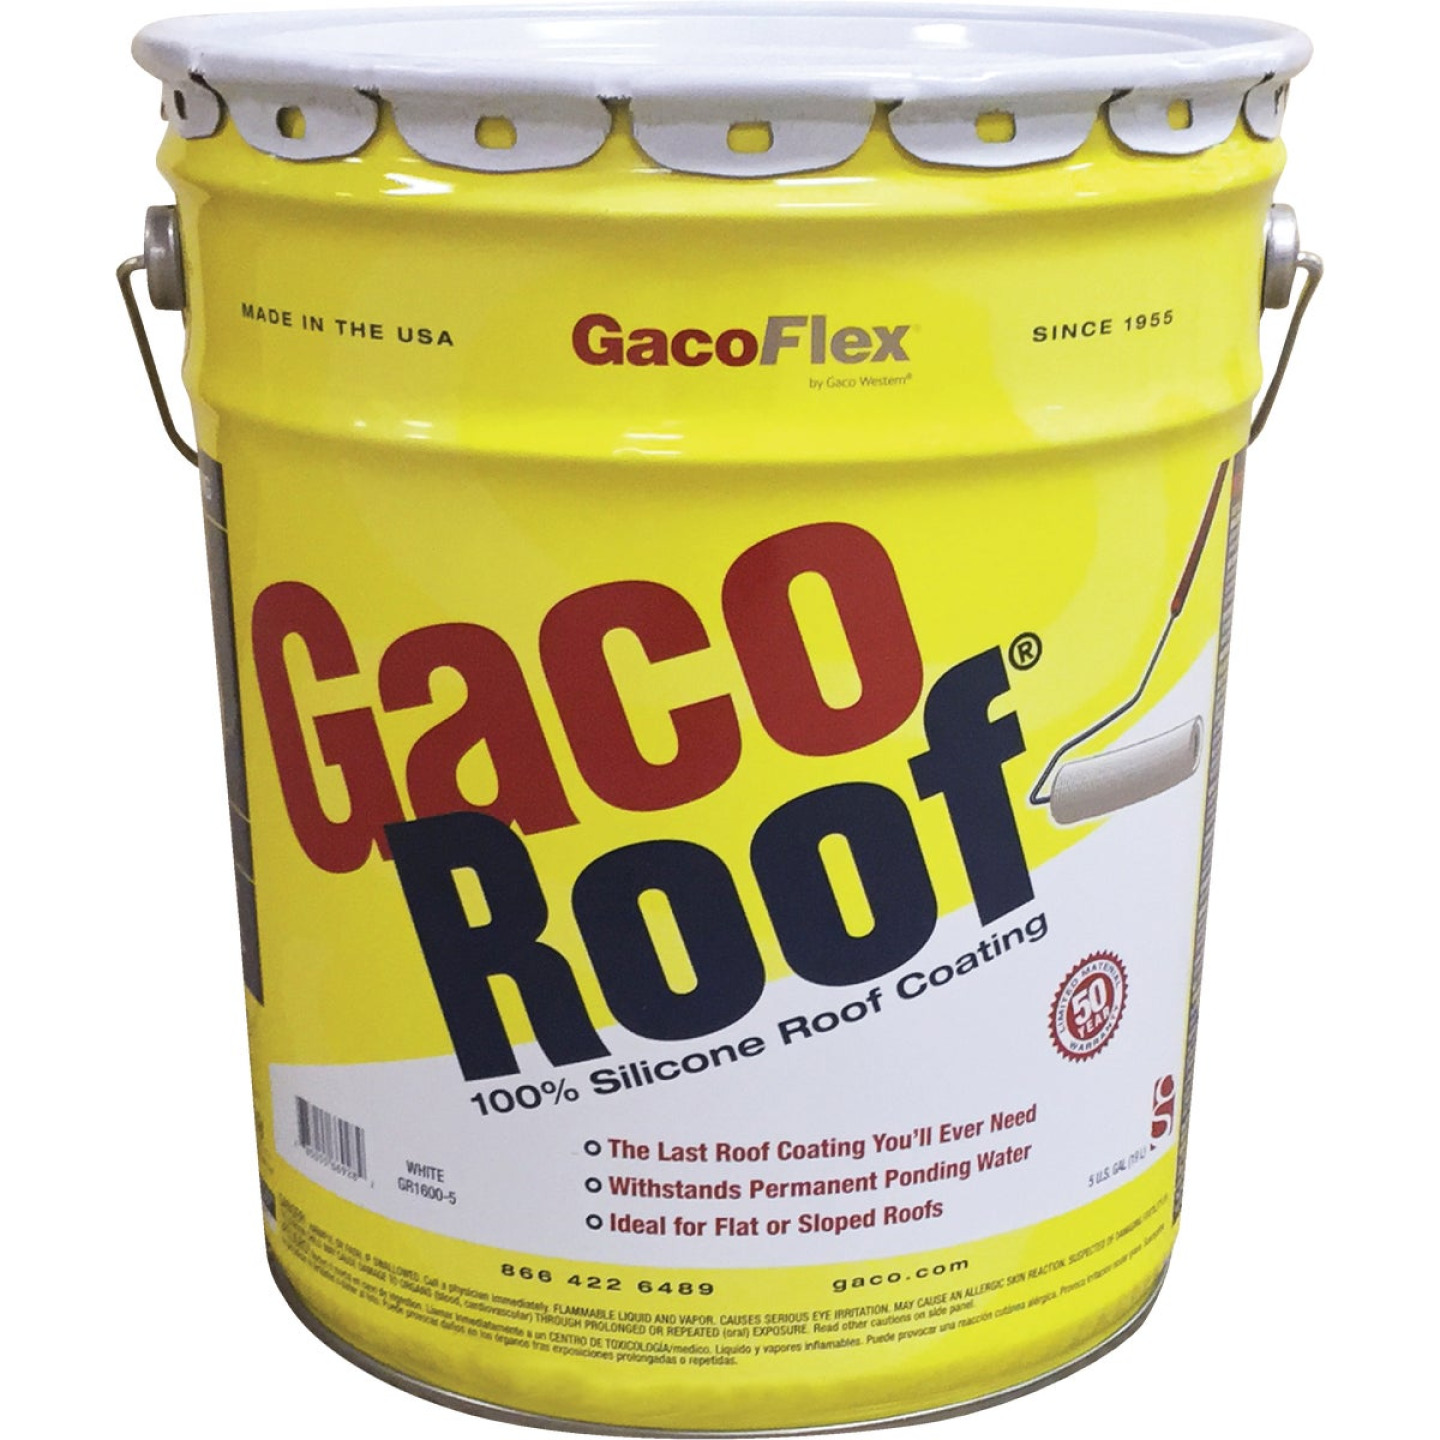 GacoFlex GacoRoof VOC-Compliant Silicone Roof Coating, White, 5 Gal. Image 1